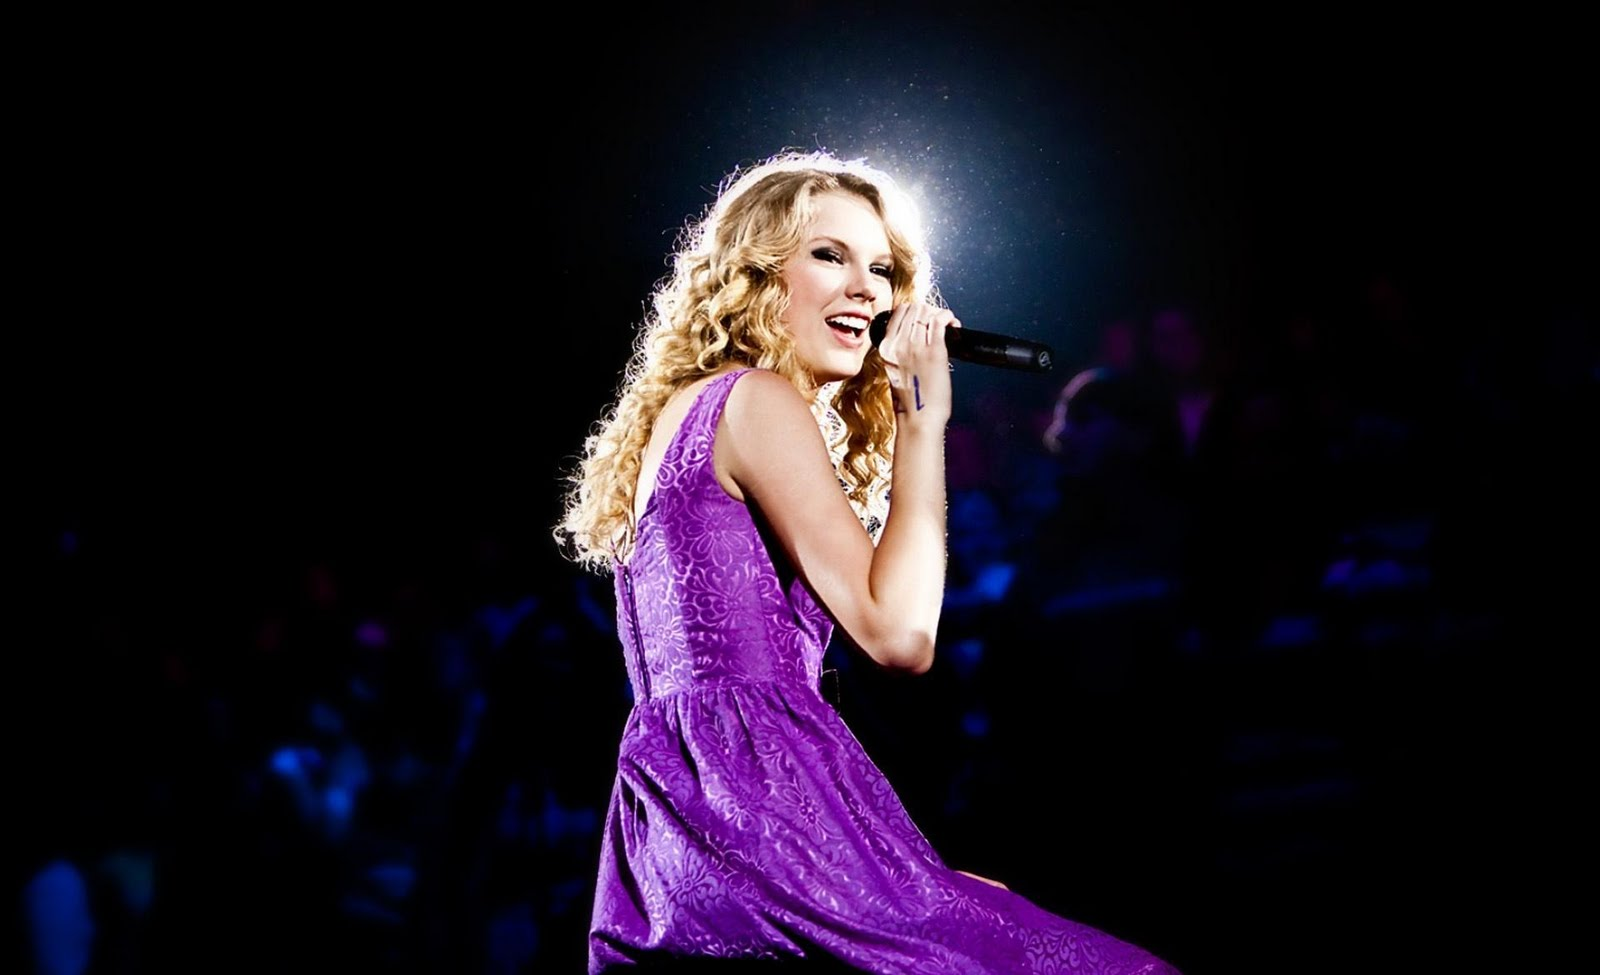 http://3.bp.blogspot.com/-OeH7Cm4Do4w/TwmmbClHU3I/AAAAAAAANEs/qRbI6lBvYa8/s1600/Taylor_Swift_american_idol_singer_wallpapers.jpg